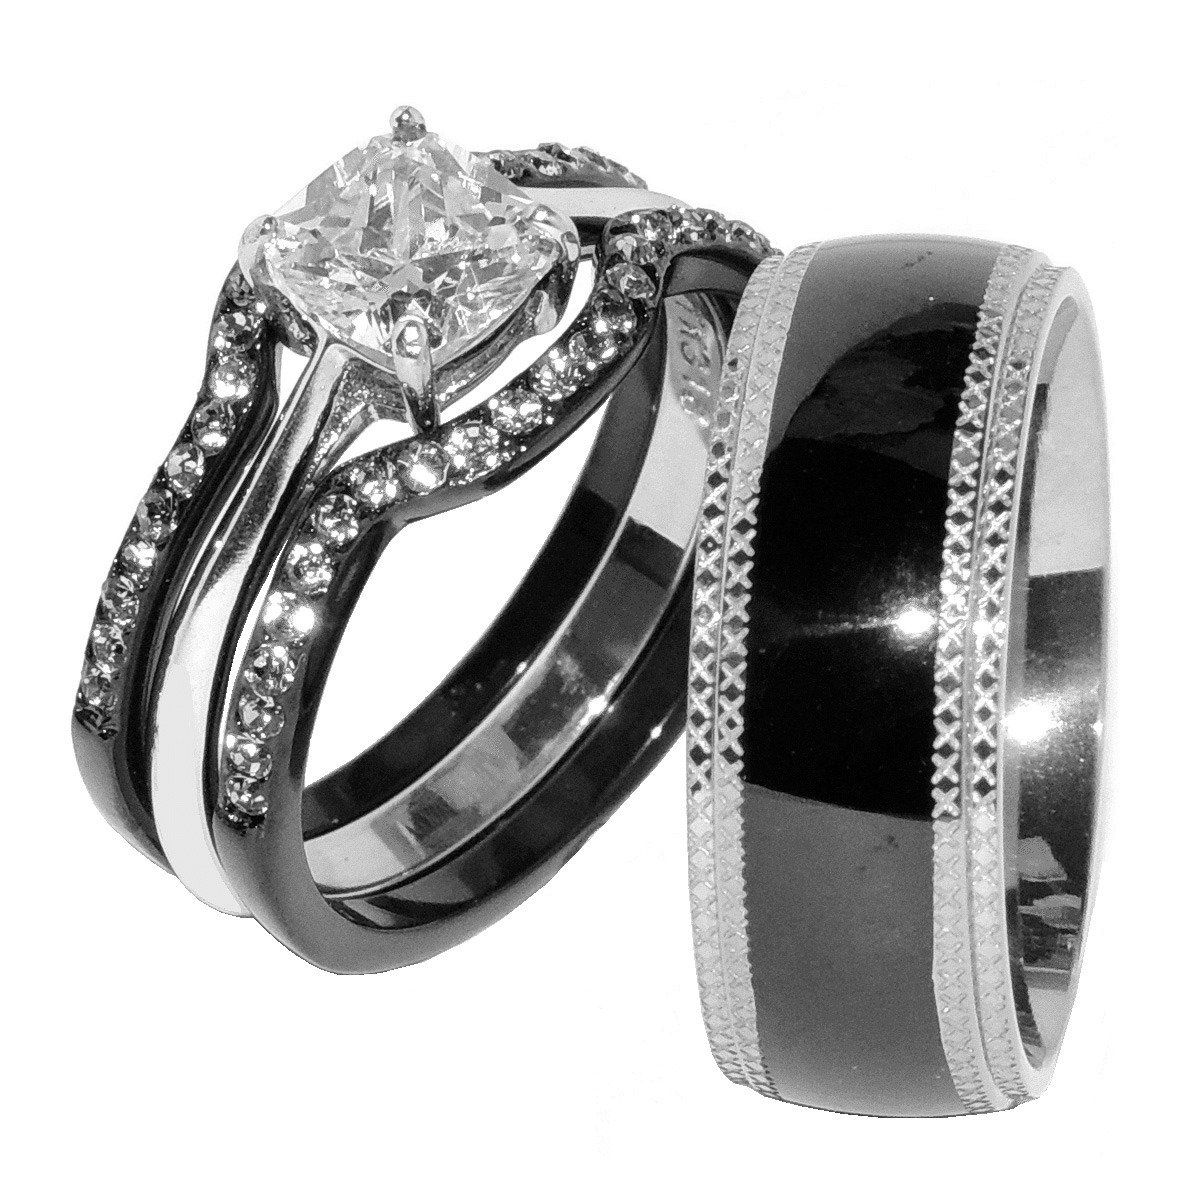 His hers 4 pcs black ip stainless steel cz wedding ring for Men and women matching wedding rings